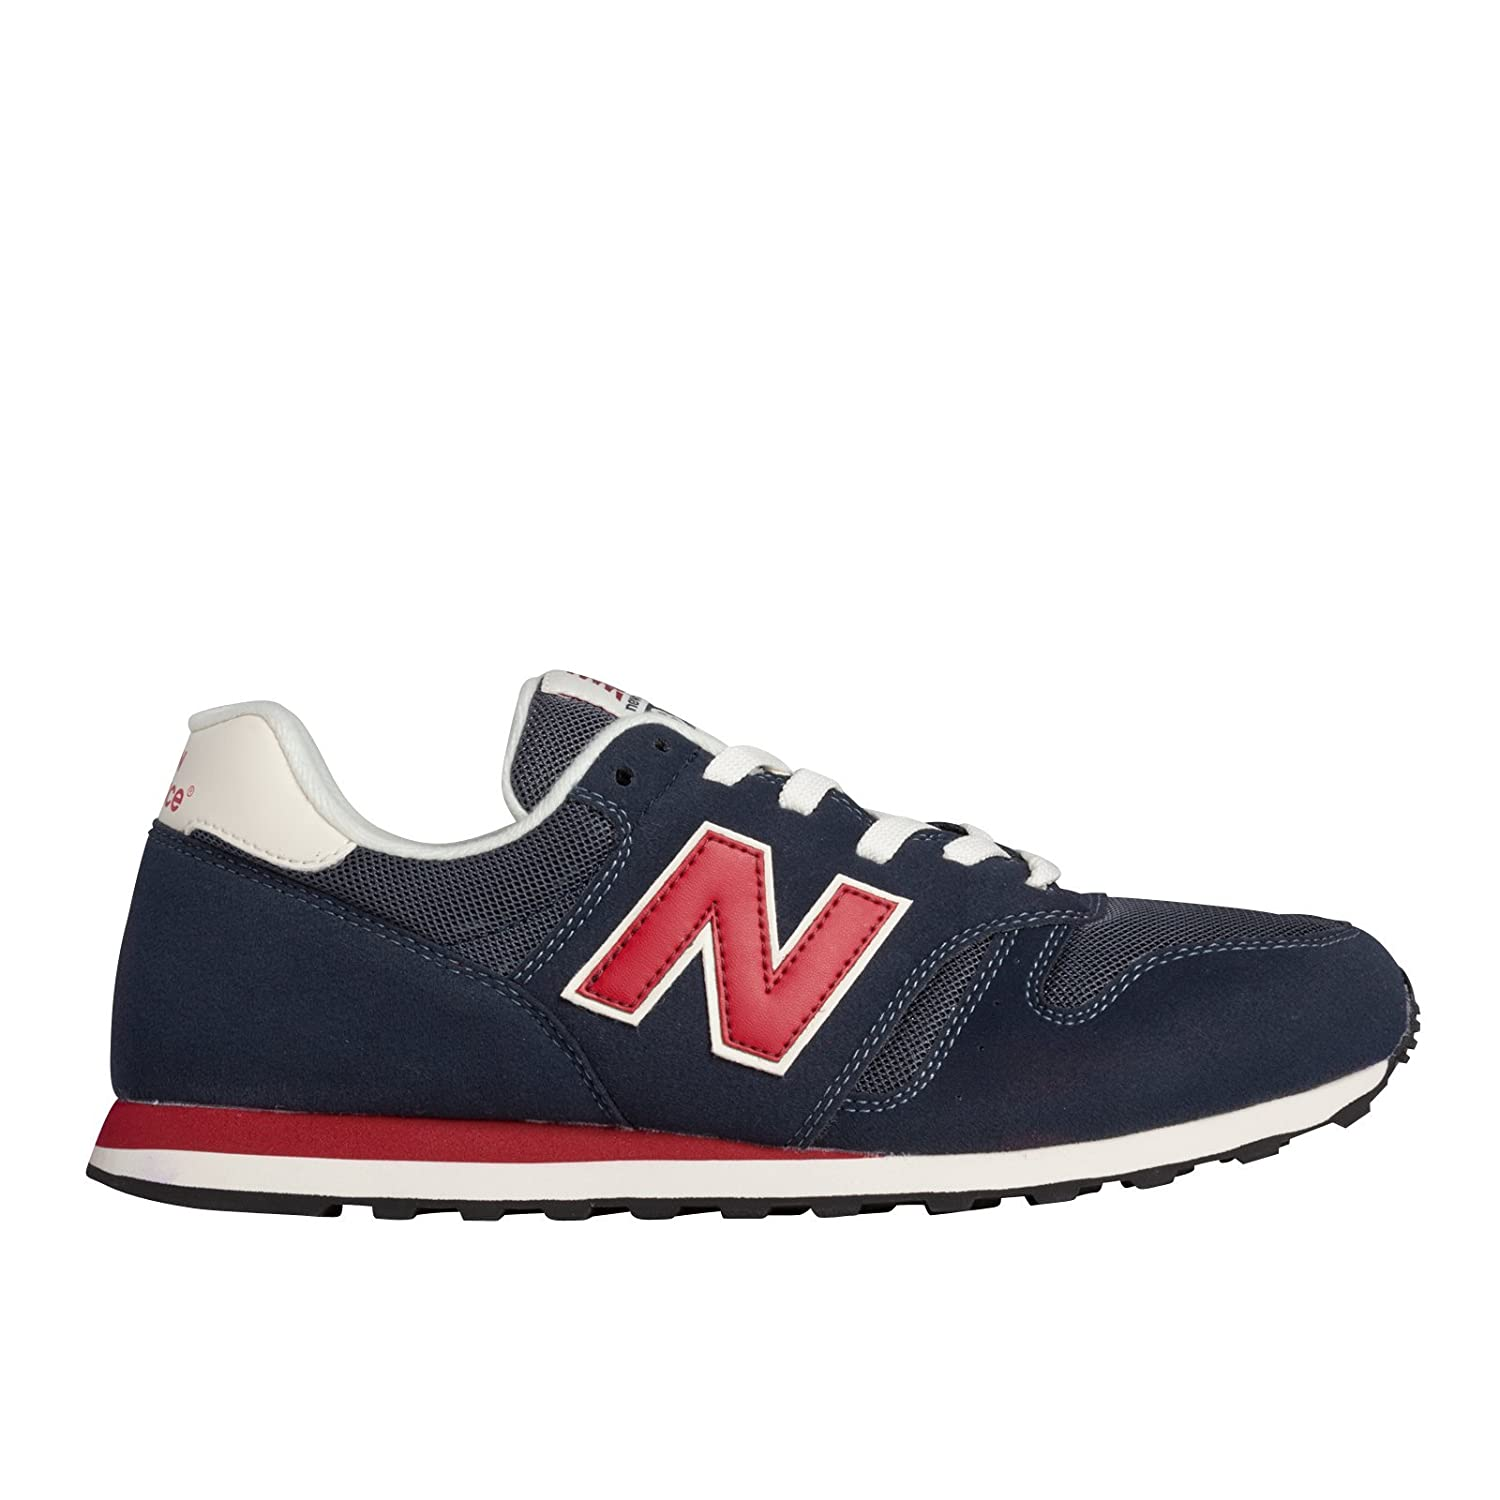 New Balance Ml373 D, Men\u0027s Low-Top Sneakers: Amazon.co.uk: Shoes \u0026 Bags